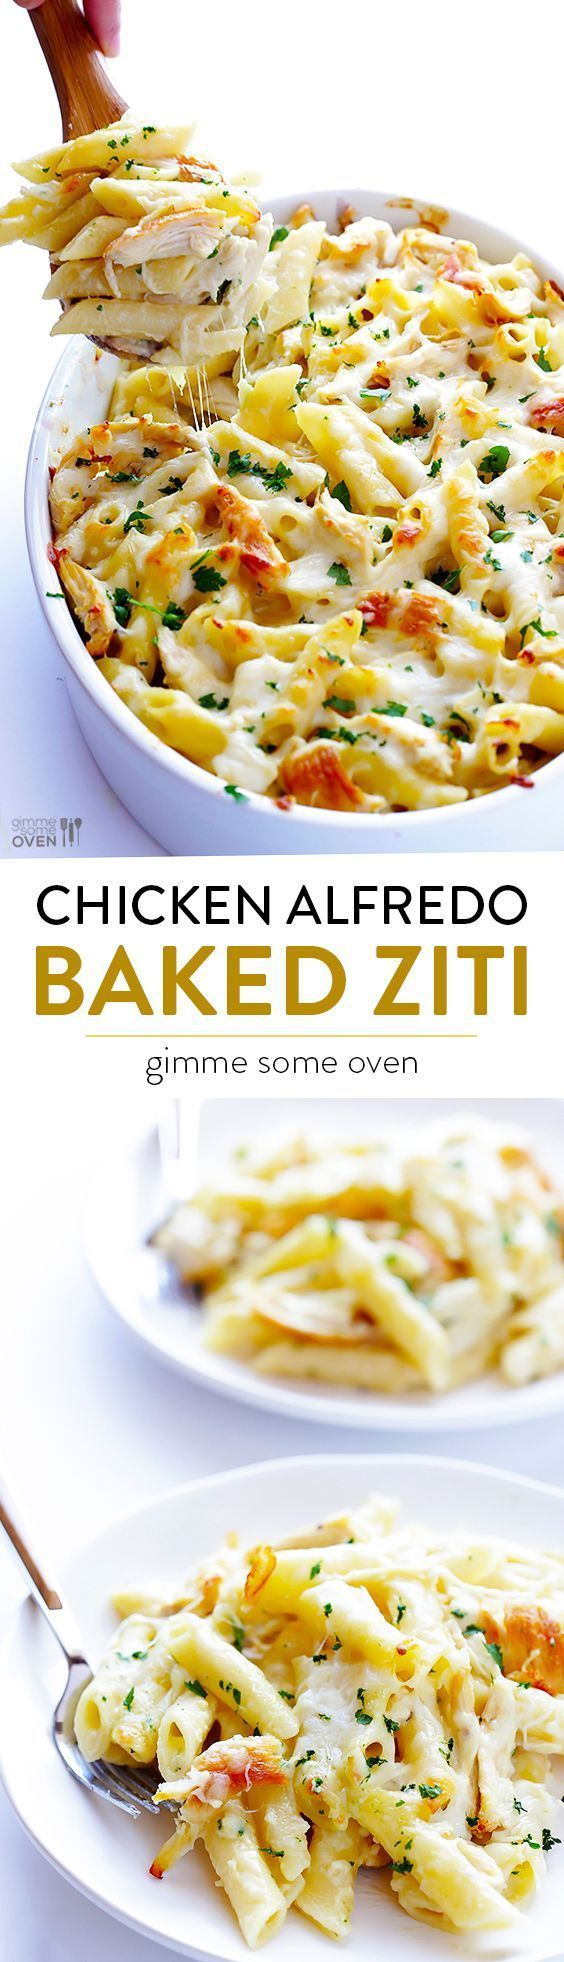 Chicken Alfredo Baked Ziti -- simple to make, made with a lighter alfredo sauce, and SO comforting and delicious | http://gimmesomeoven.com